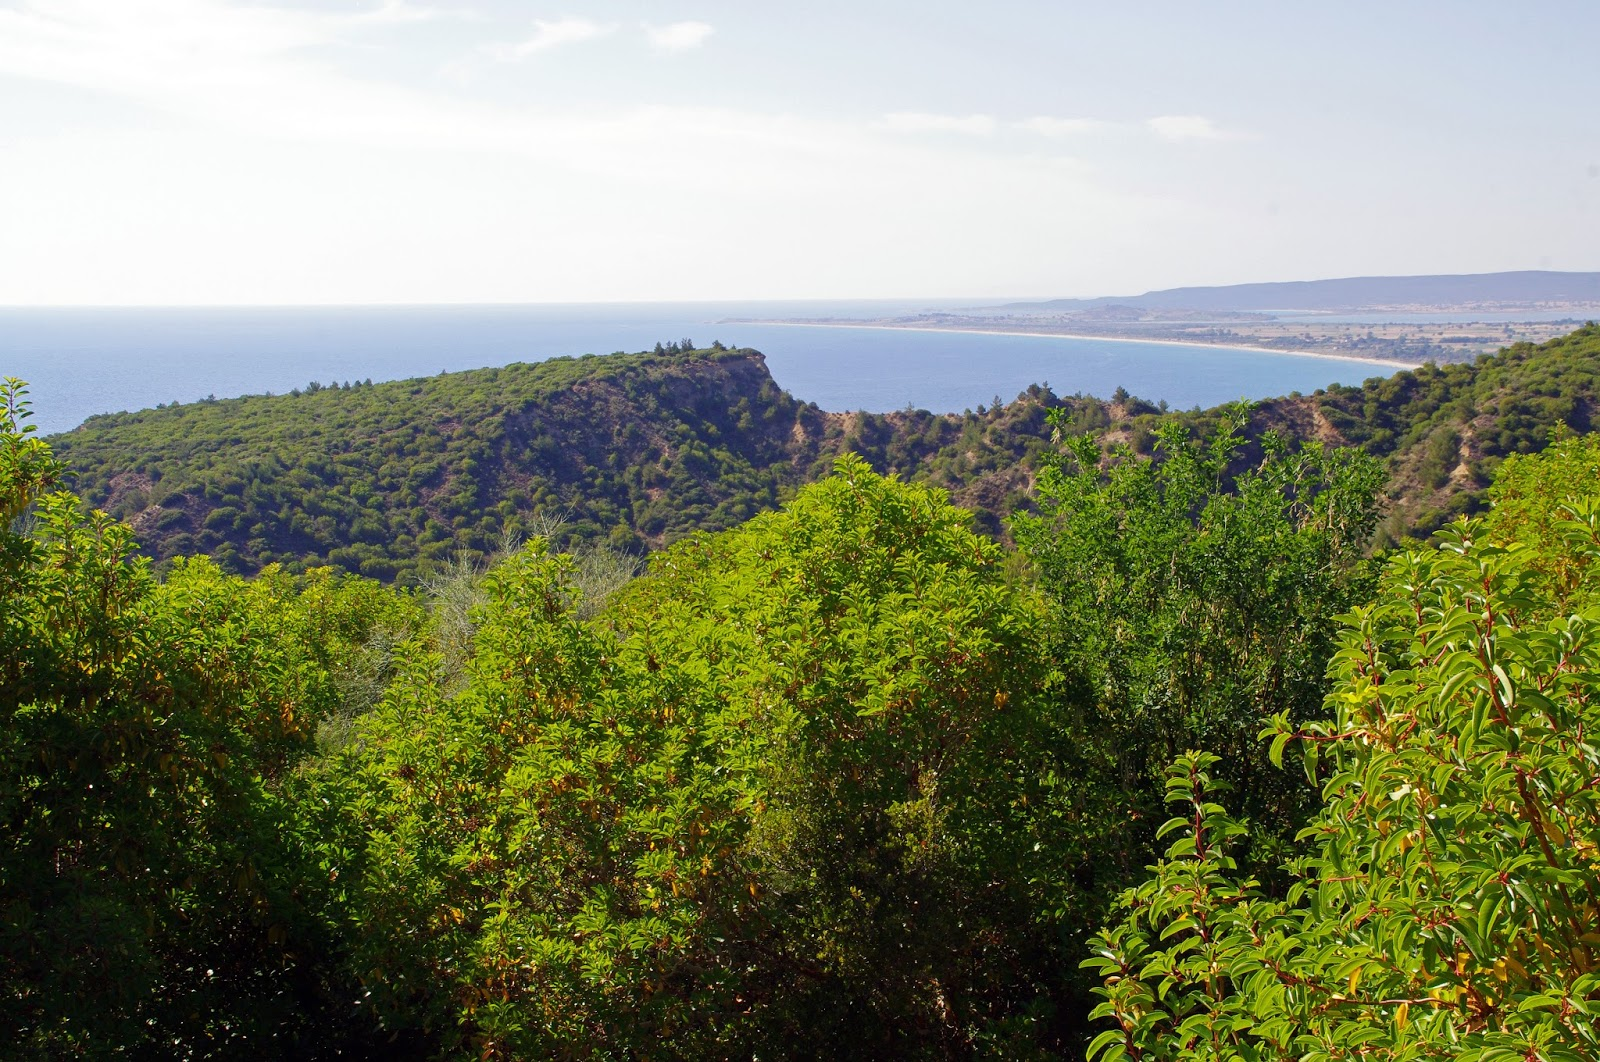 View of Gallipoli from the Nek